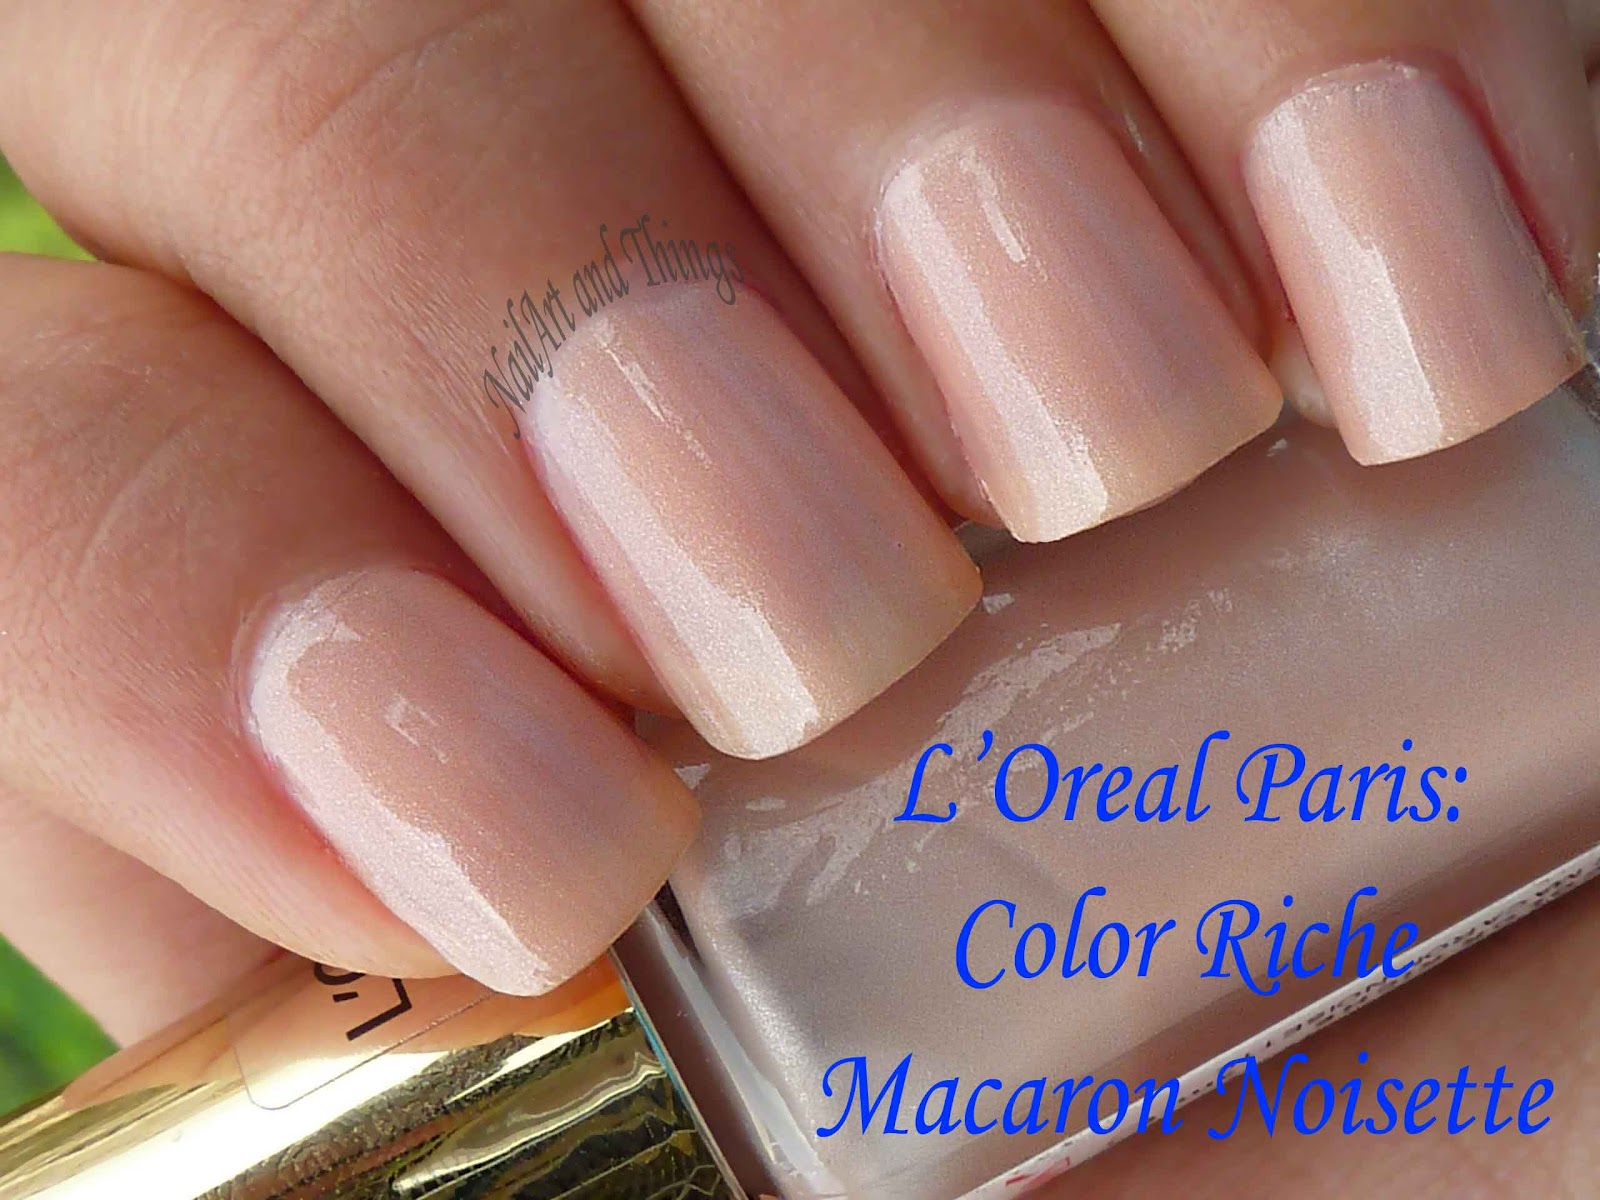 NailArt and Things: L'oreal Color Riche: Macaron Noisette+ French ...